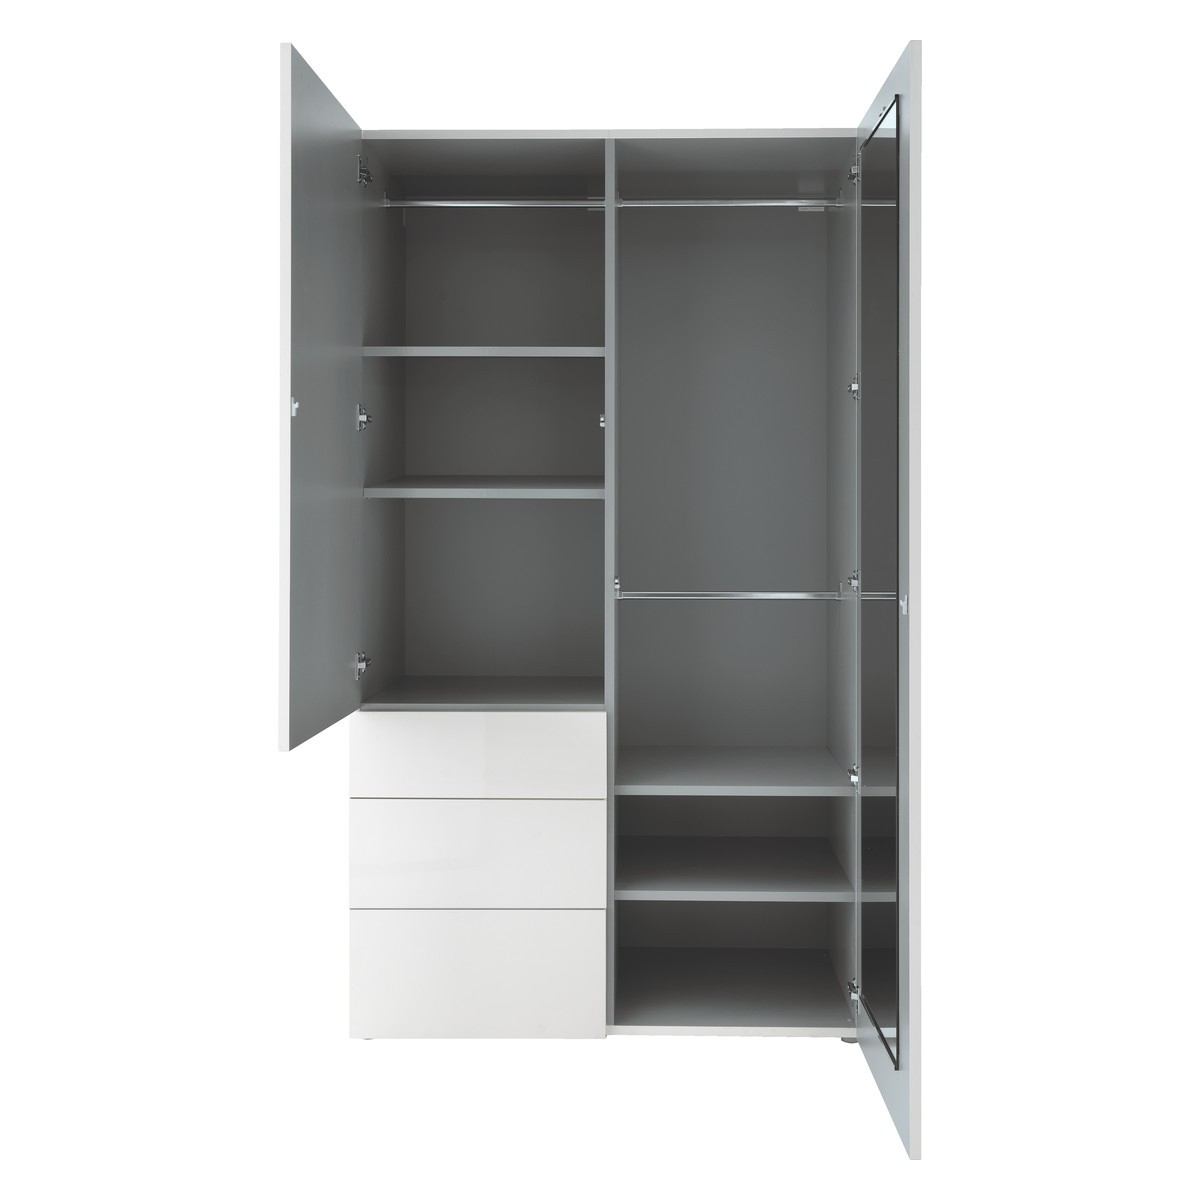 Most Recent Wardrobes With Shelves And Drawers Pertaining To Perouse White 2 Door Wardrobe 120Cm Width (View 5 of 15)